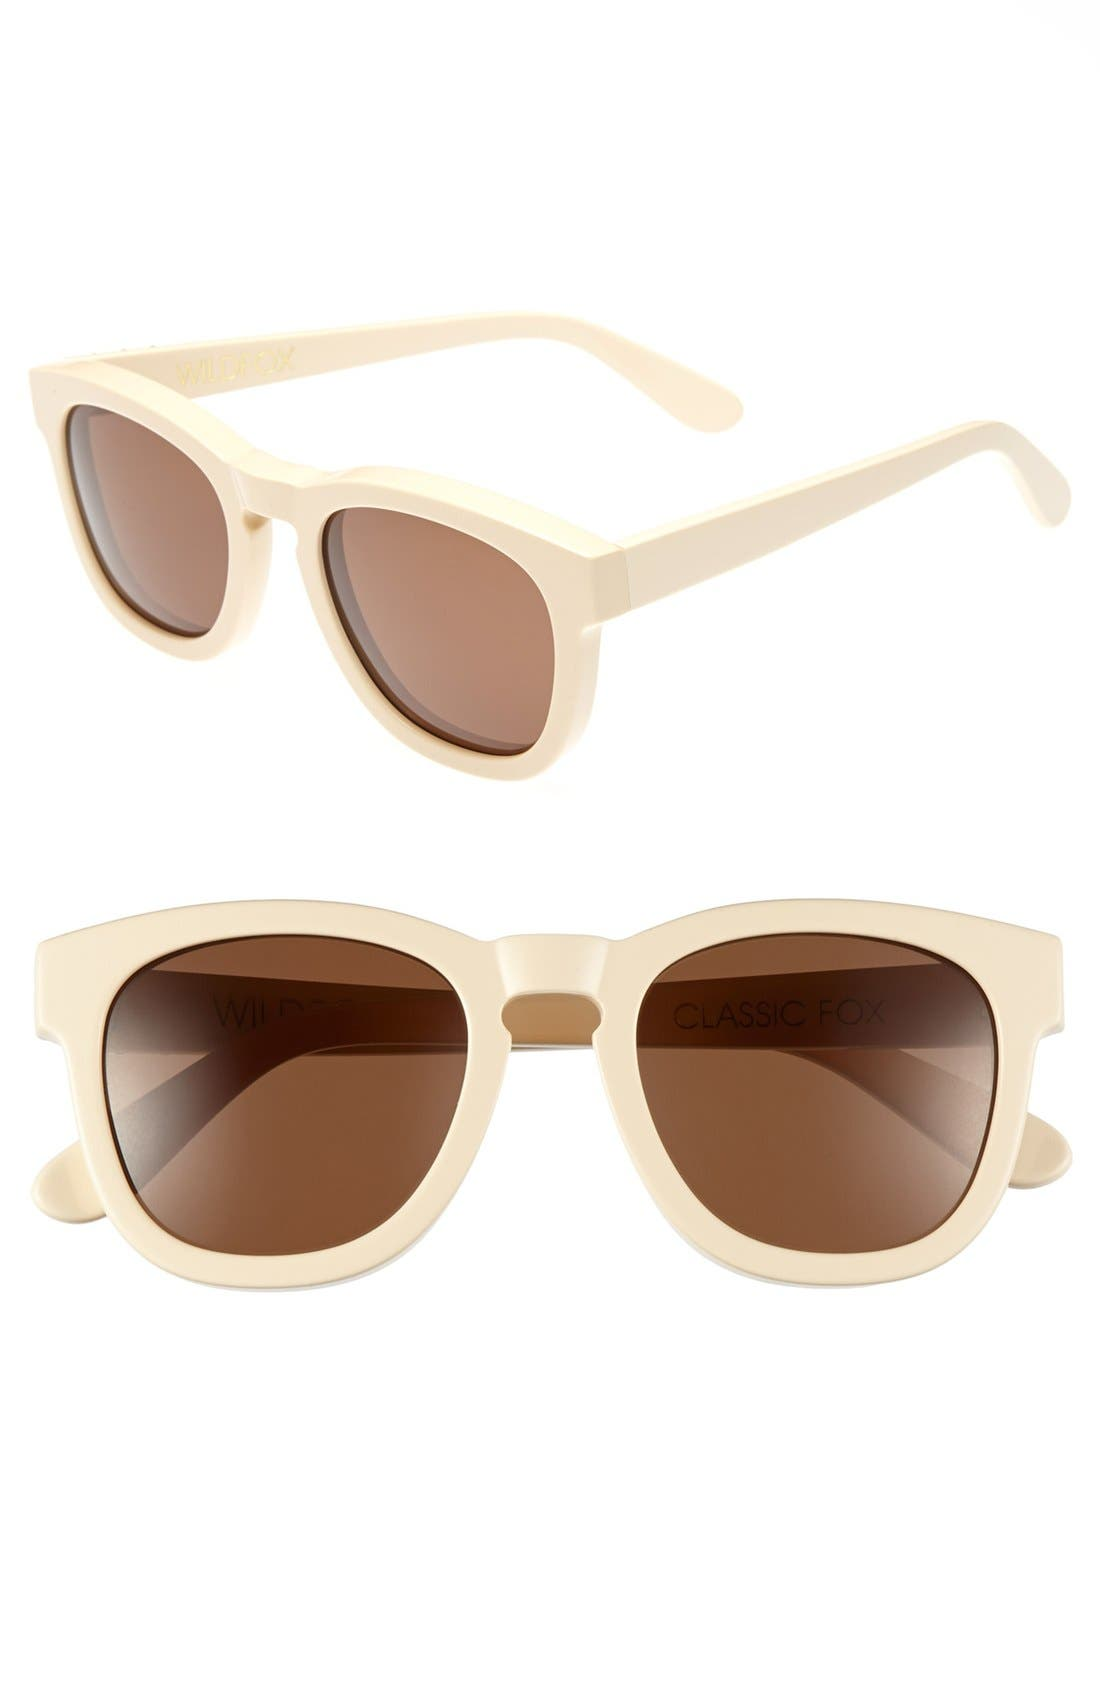 Alternate Image 1 Selected - Wildfox 'Juliet' Sunglasses